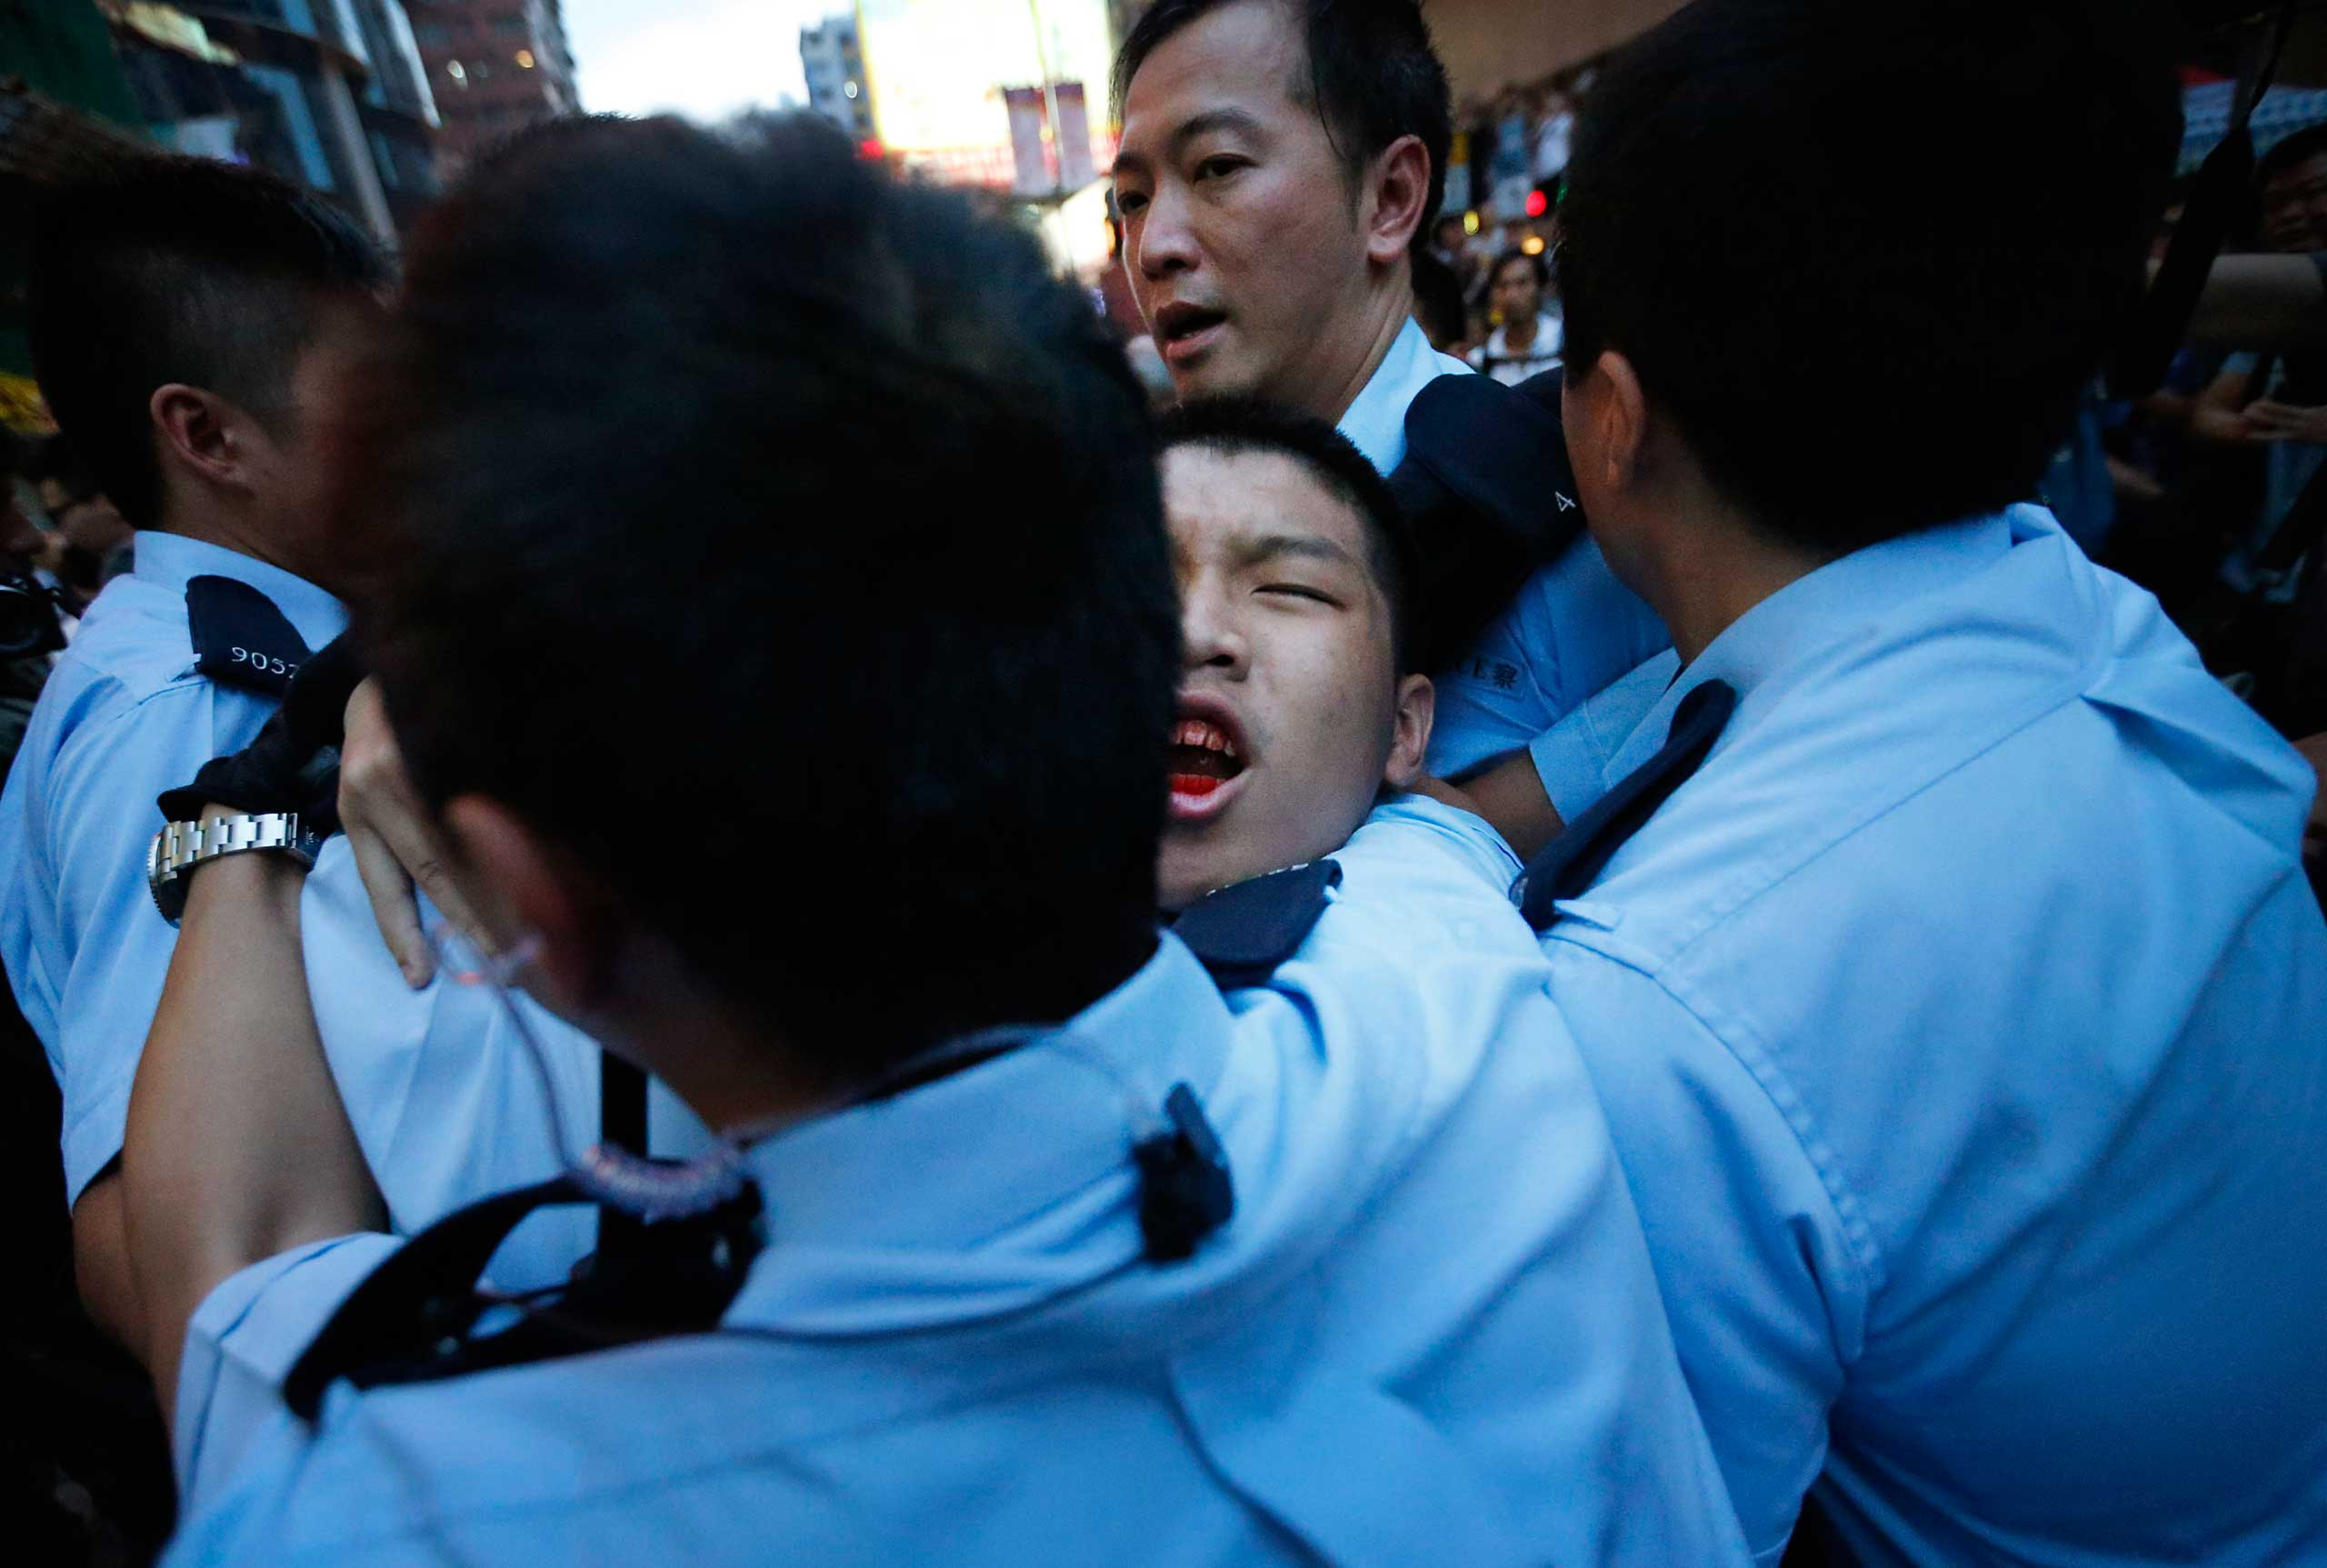 A student protester is injured after being pulled off and hit by residents and pro-Beijing supporters while local police are escorting him out of the protest area in Kowloon's crowded Mong Kok district, Oct. 3, 2014 in Hong Kong.